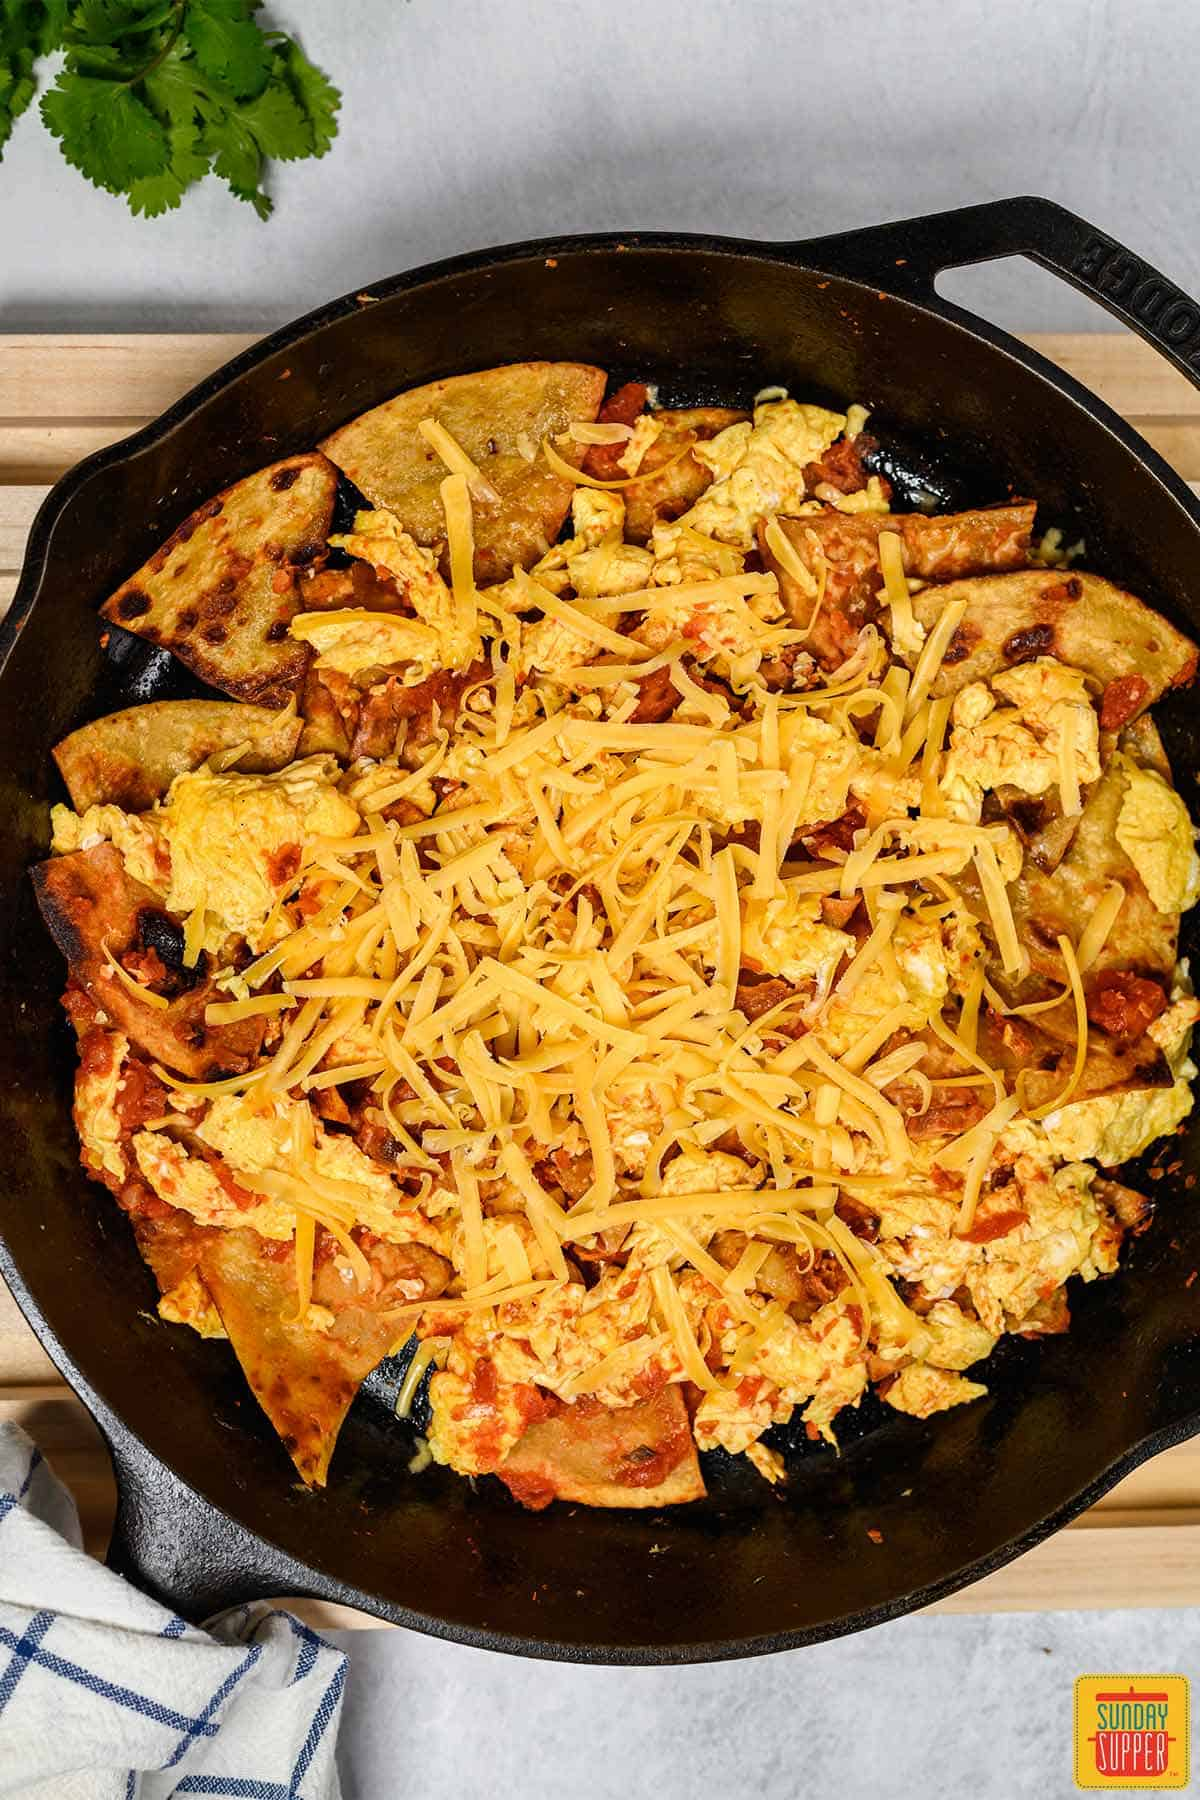 Tortillas and eggs mixed with cheese and salsa in a cast iron pan